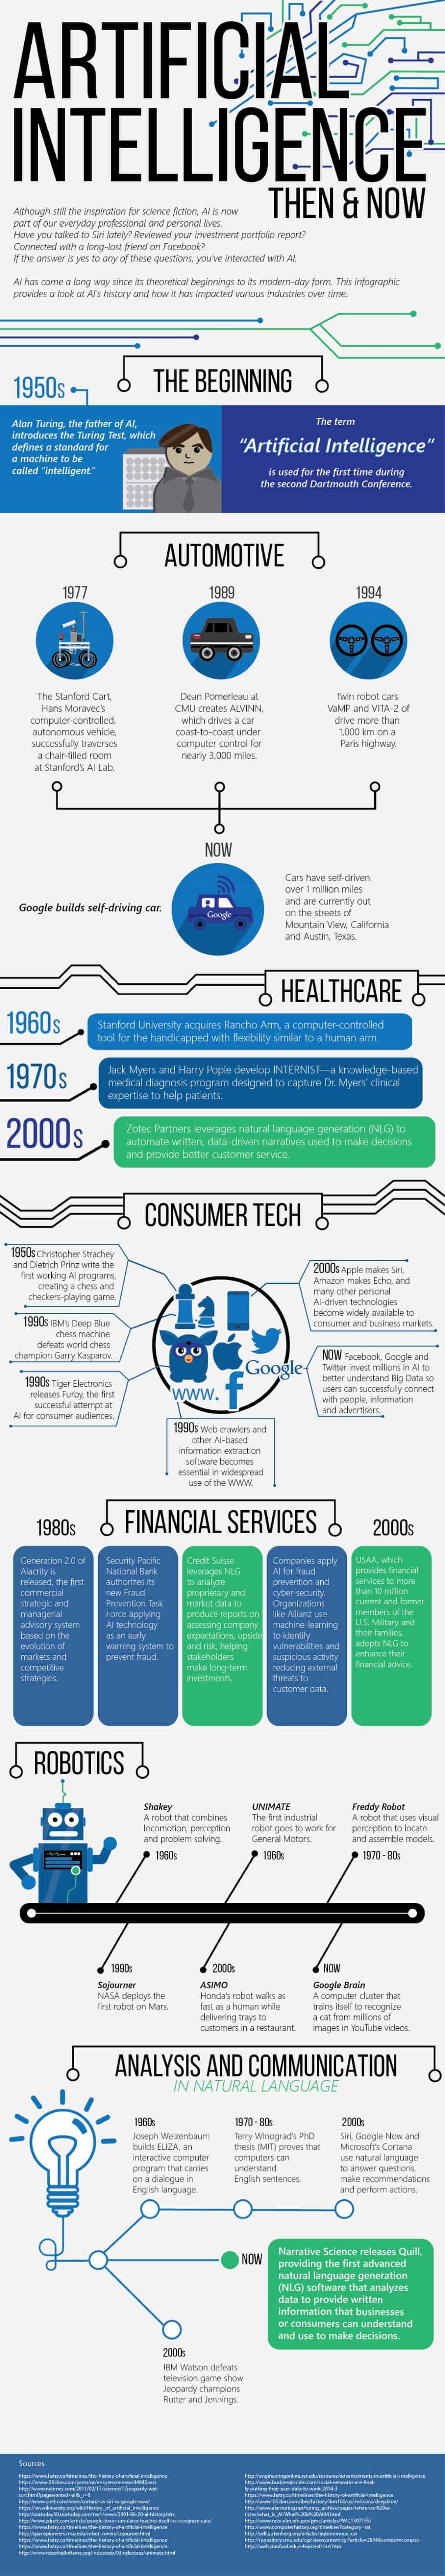 Artifical Intelligence Then & Now infographic